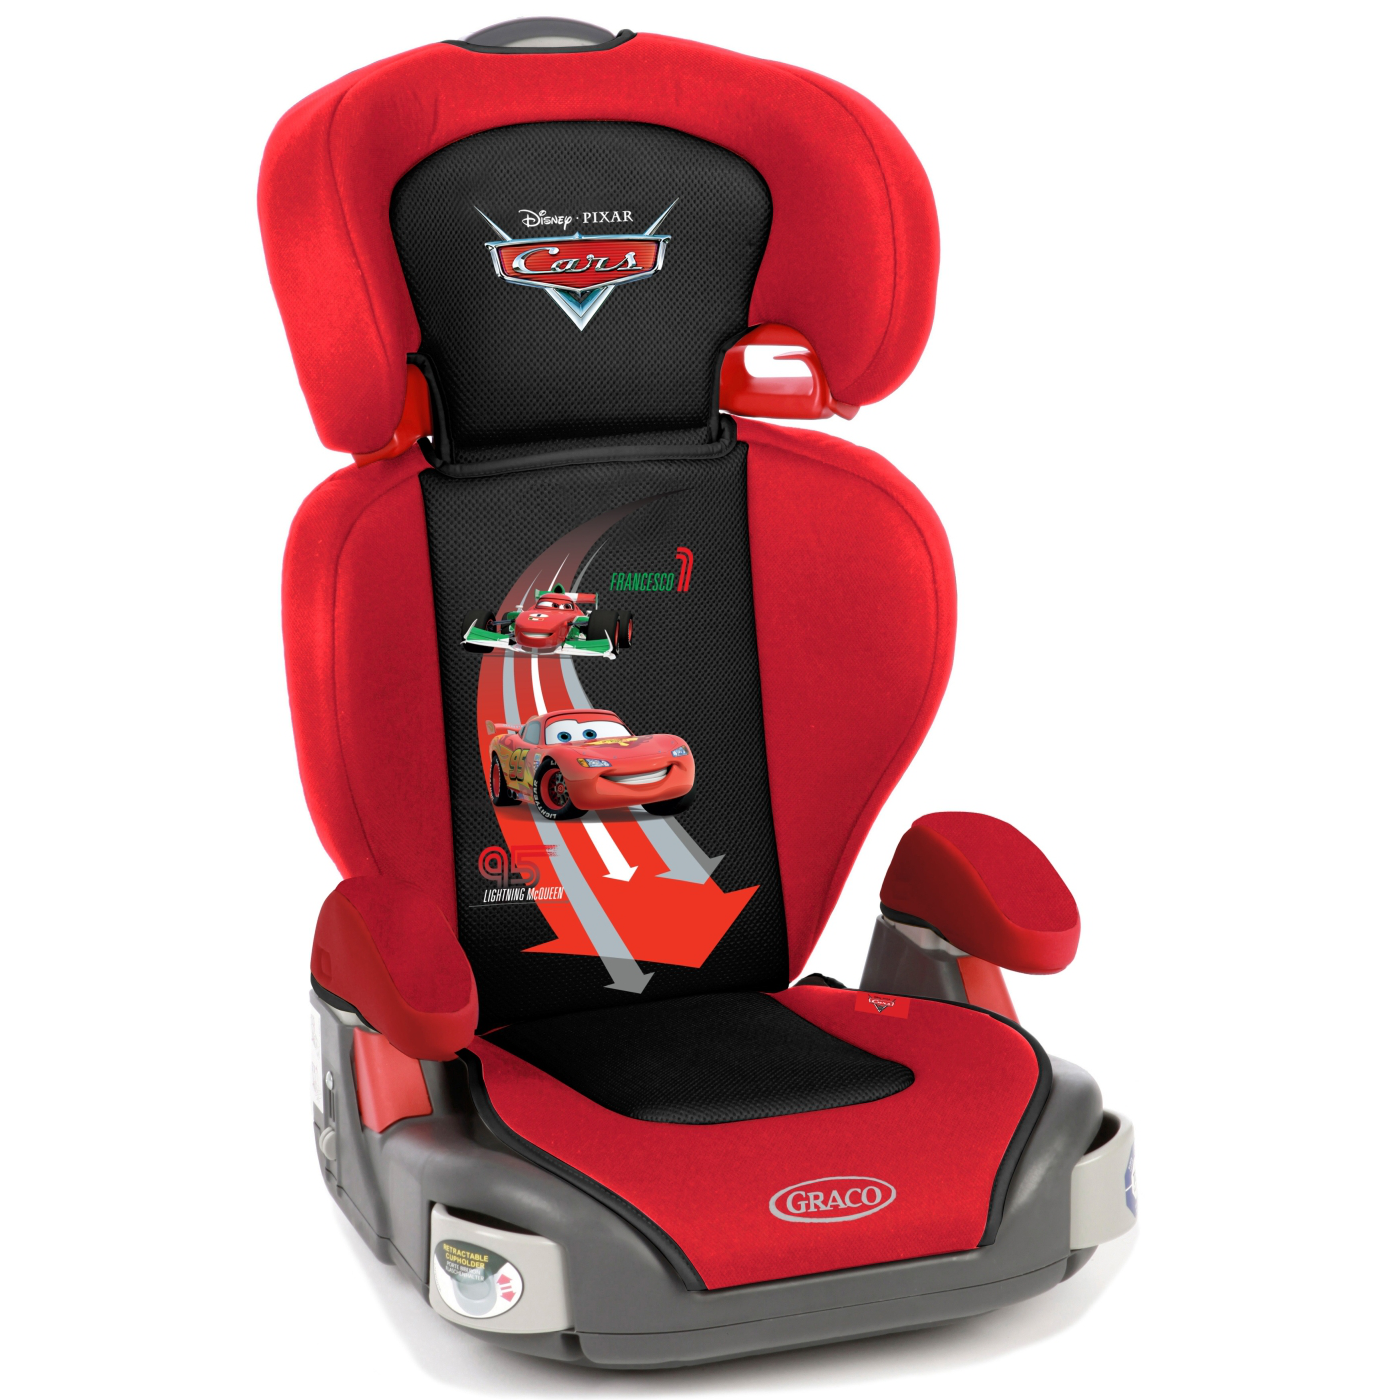 Автокресло Graco Junior Maxi Plus Disney Racing Rivals